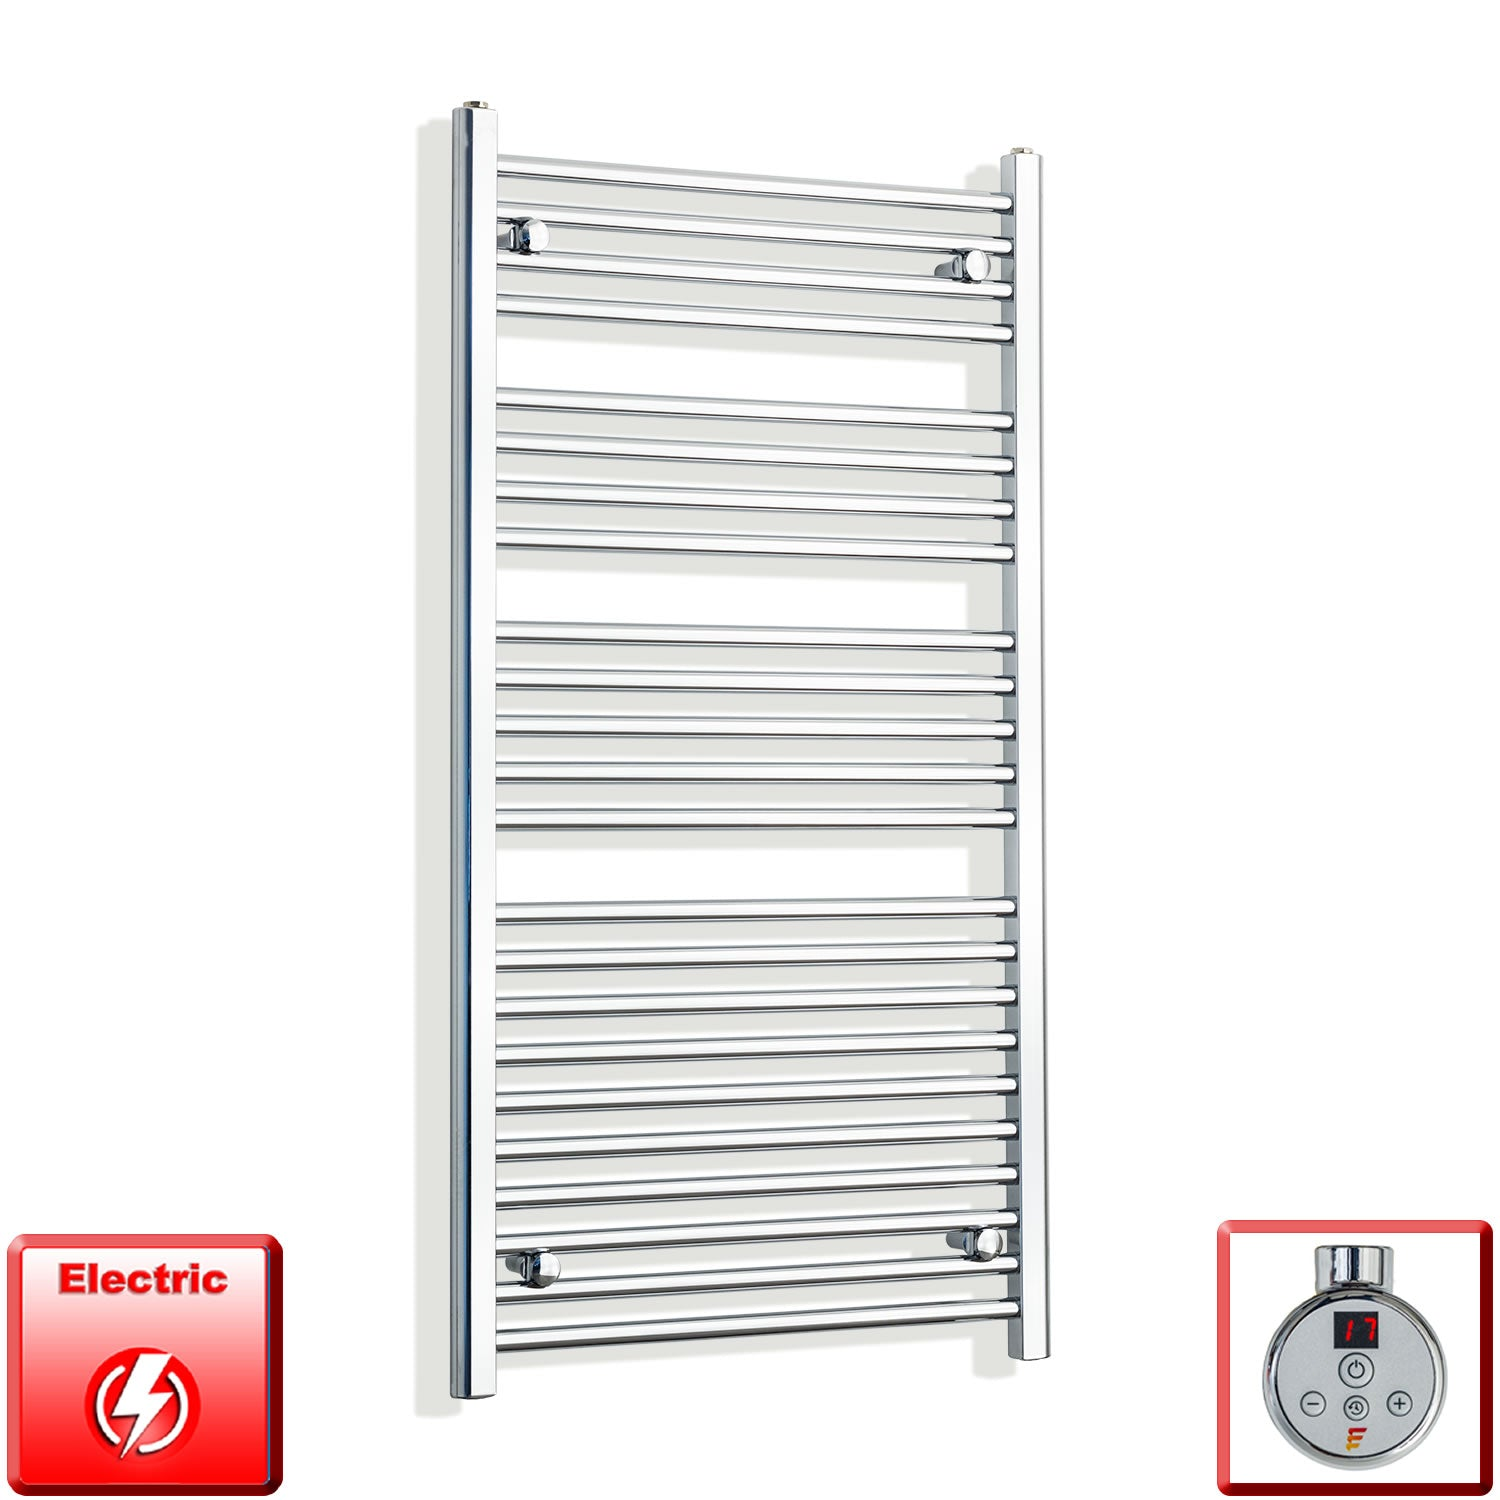 700mm Wide 1200mm High Flat Or Curved Chrome Pre-Filled Electric Heated Towel Rail Radiator HTR